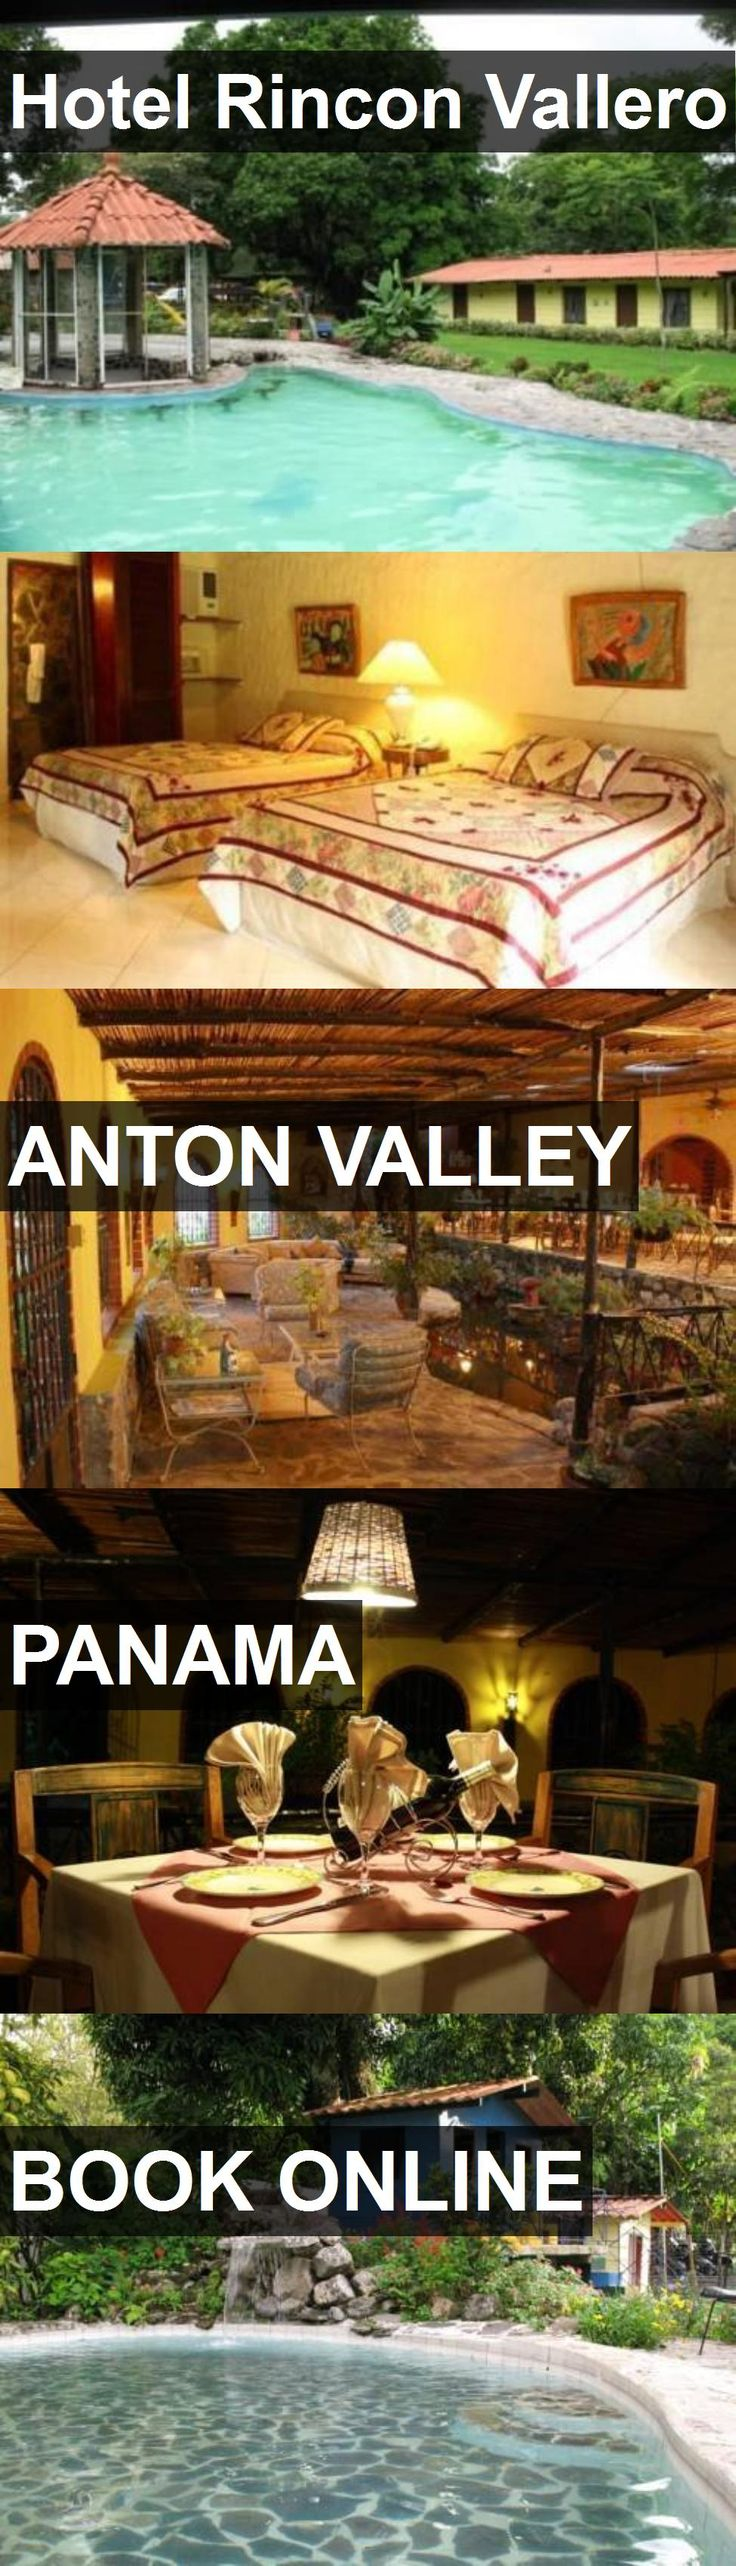 Hotel Rincon Vallero in Anton Valley, Panama. For more information, photos, reviews and best prices please follow the link. #Panama #AntonValley #travel #vacation #hotel